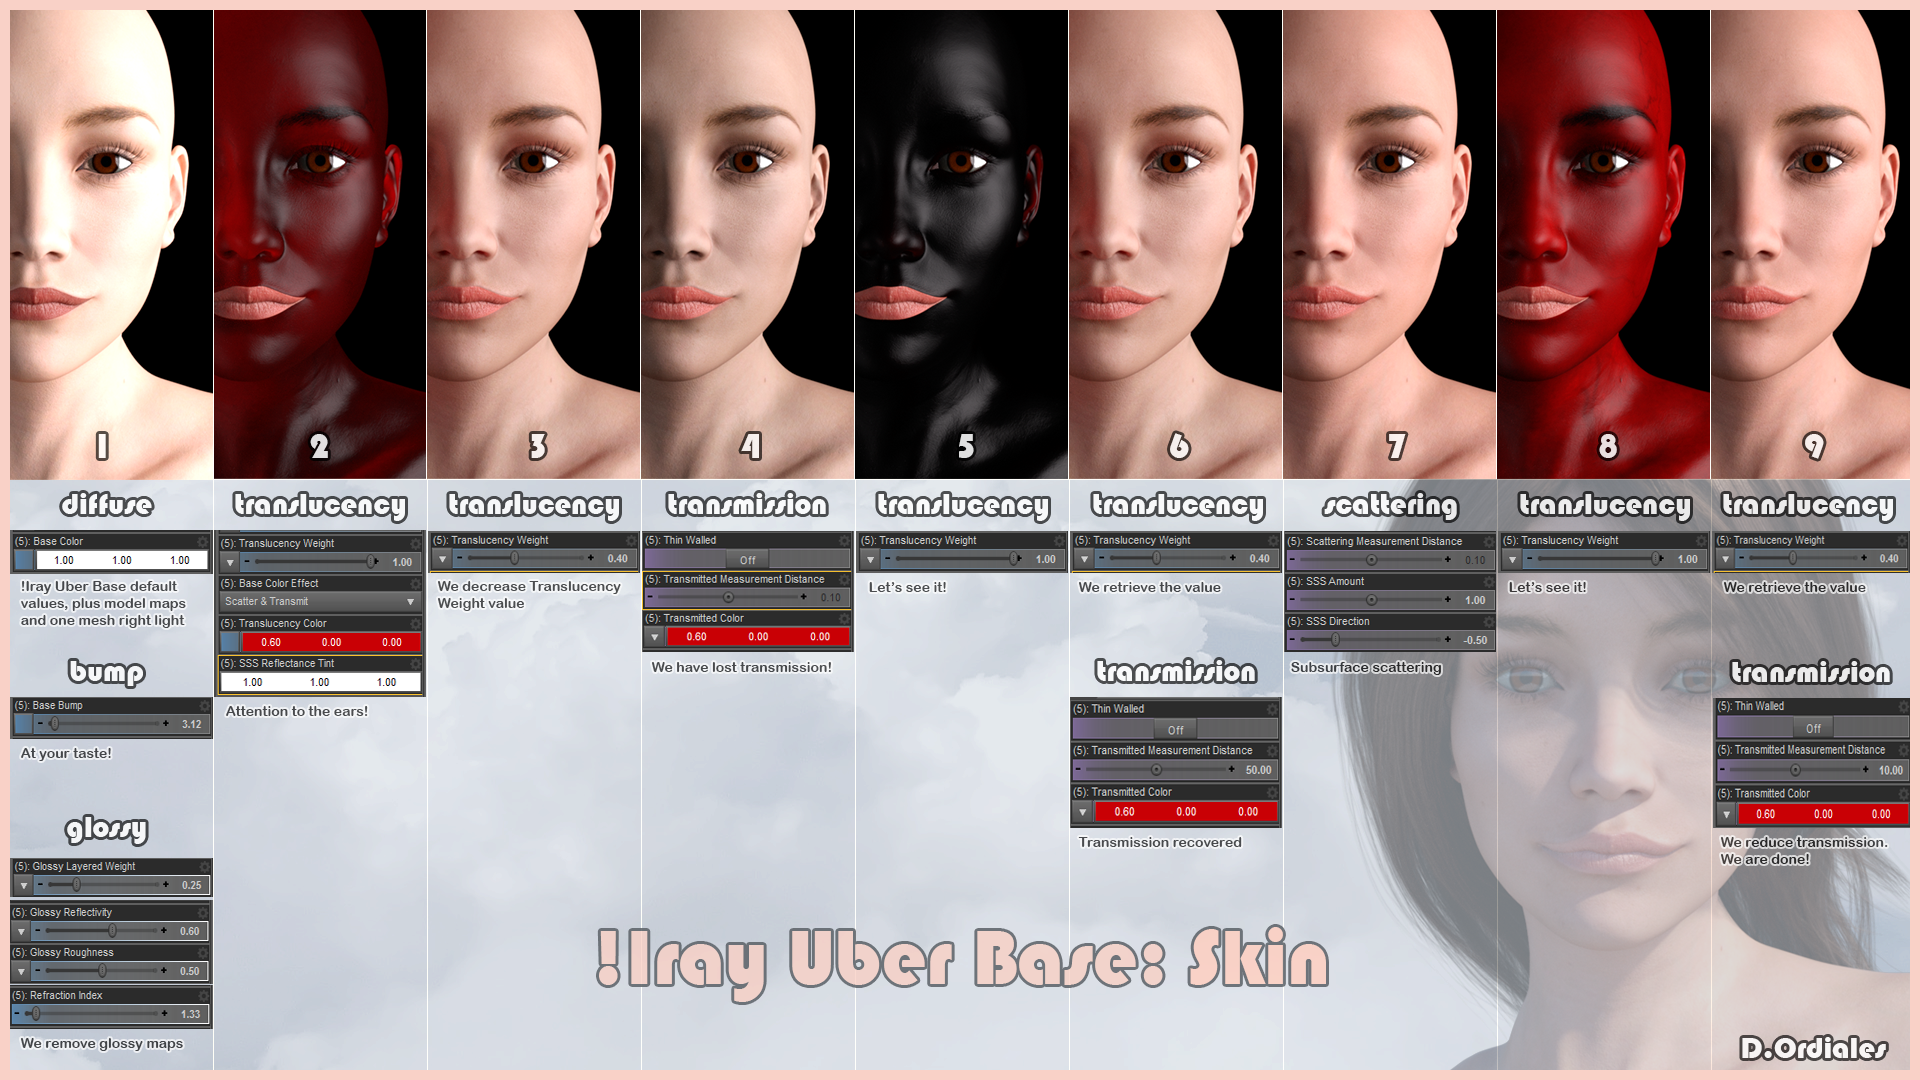 !Iray Uber Base: Skin by DOrdiales